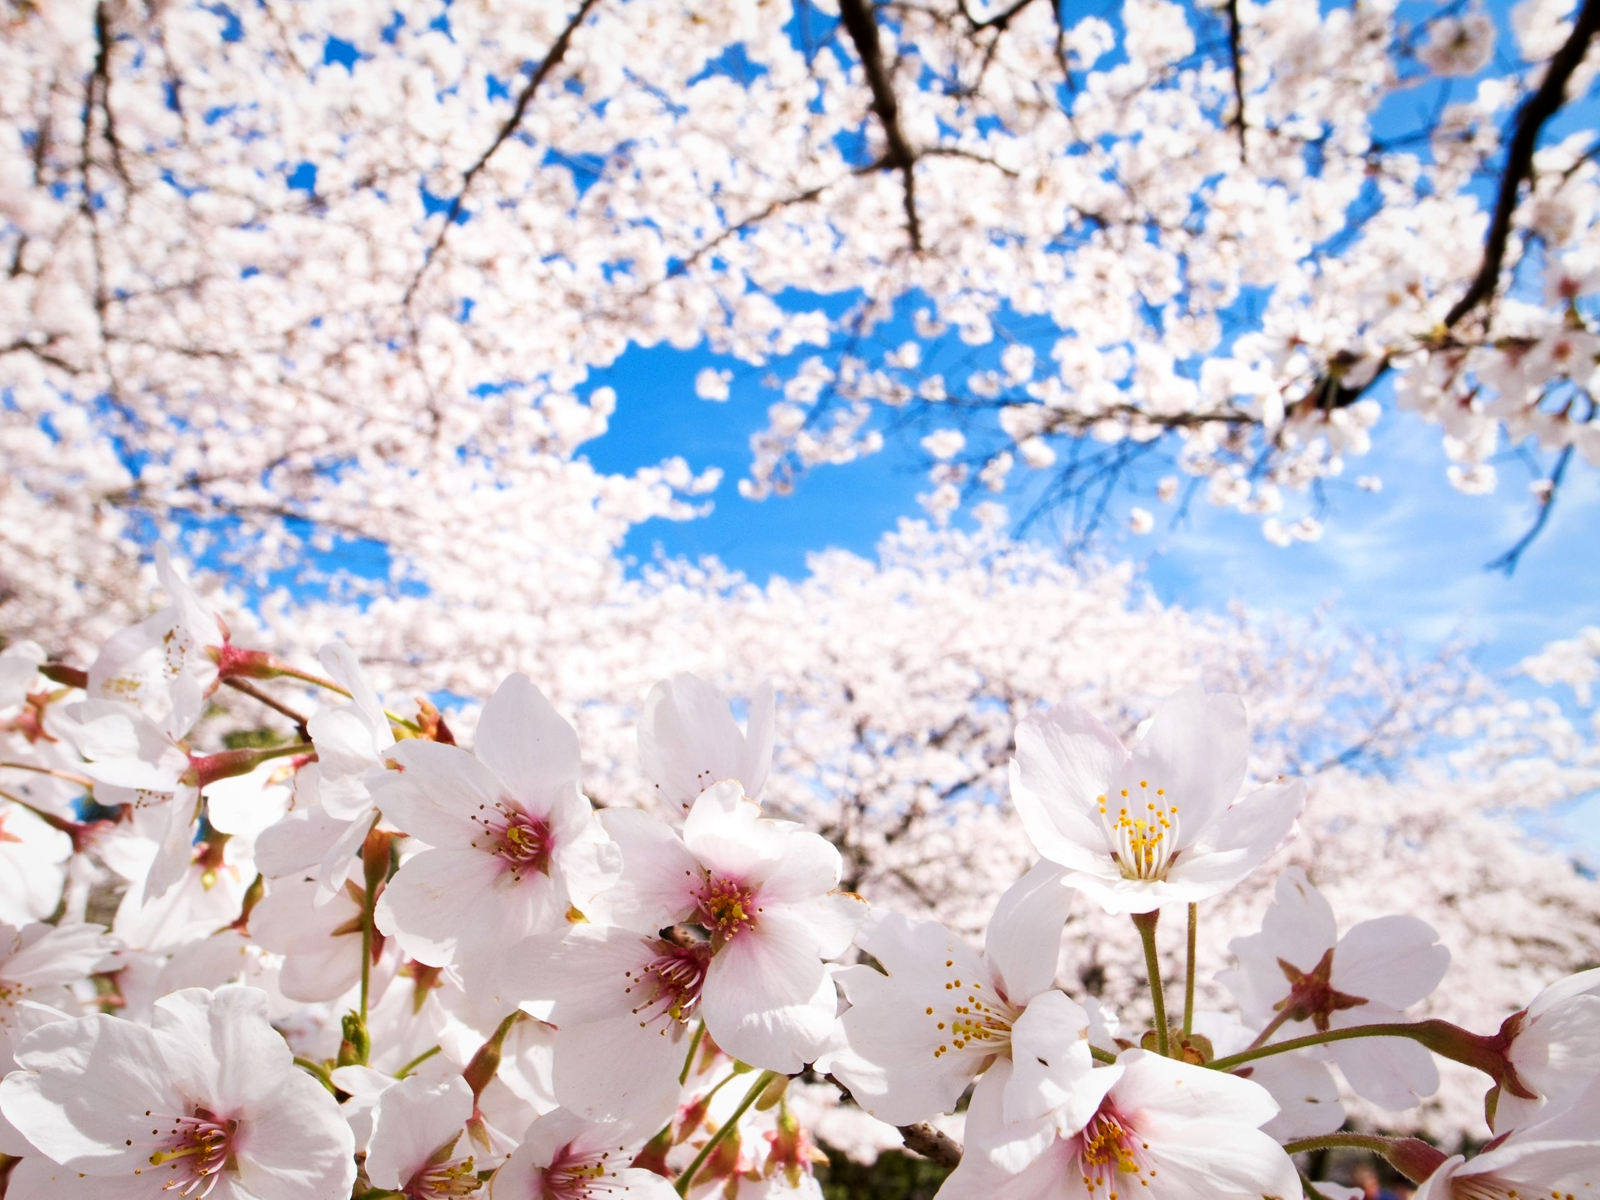 hd cherry blossom backgrounds - photo #9